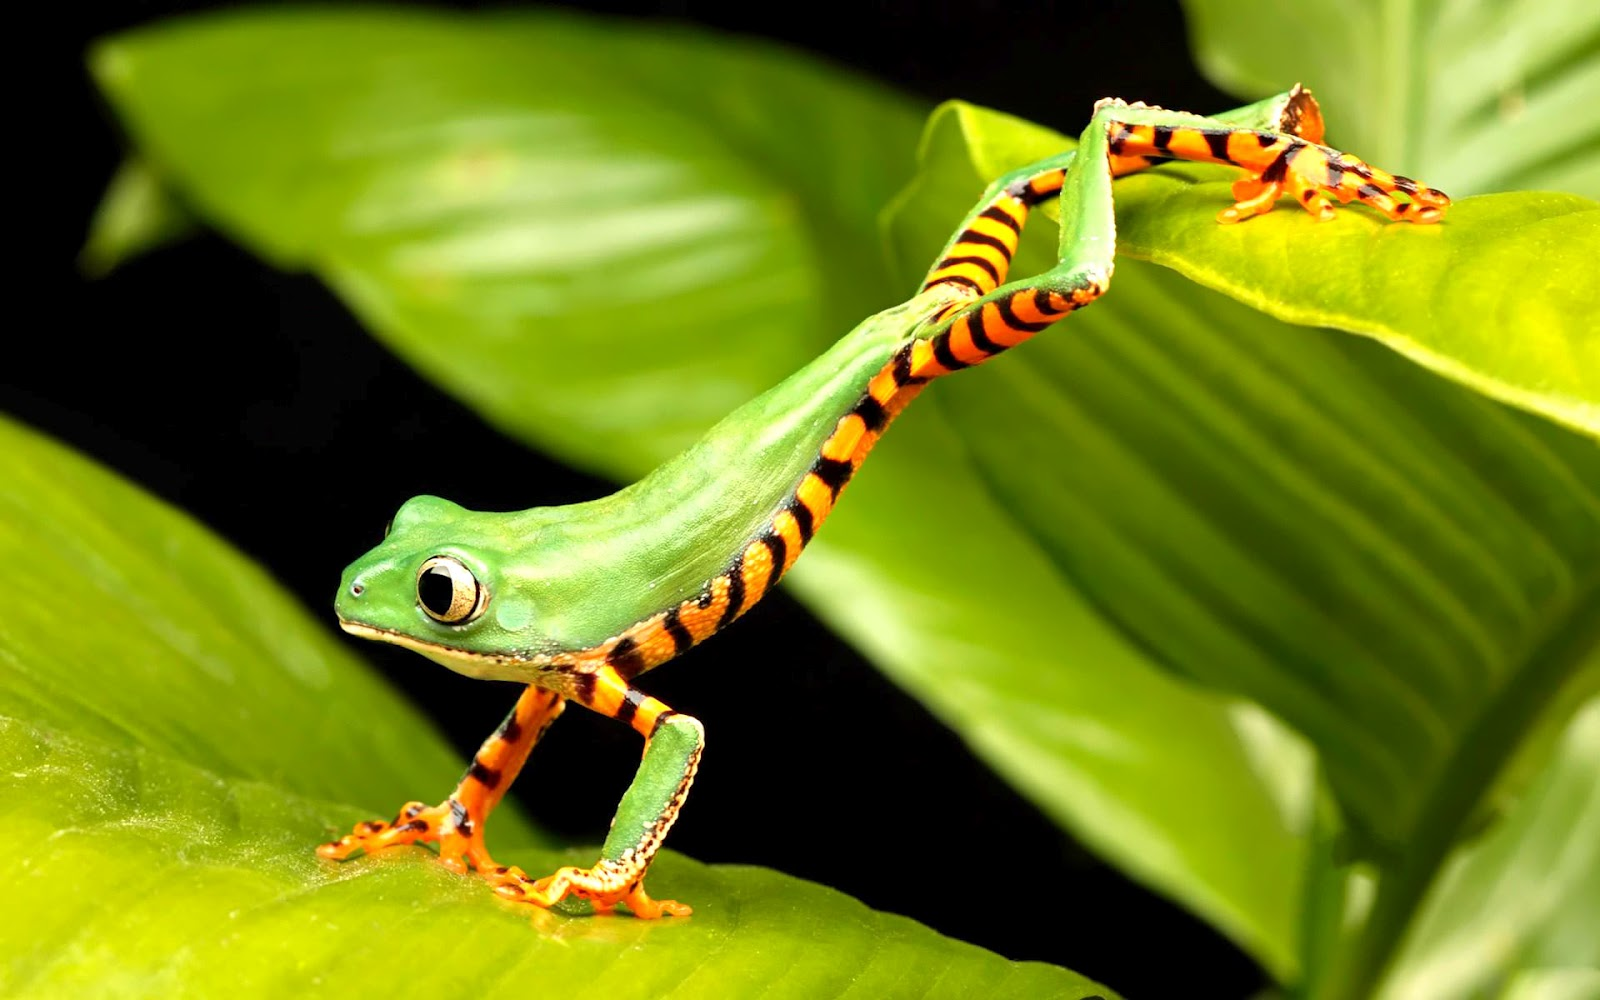 Frog wallpapers animals library - Best animal wallpaper download ...